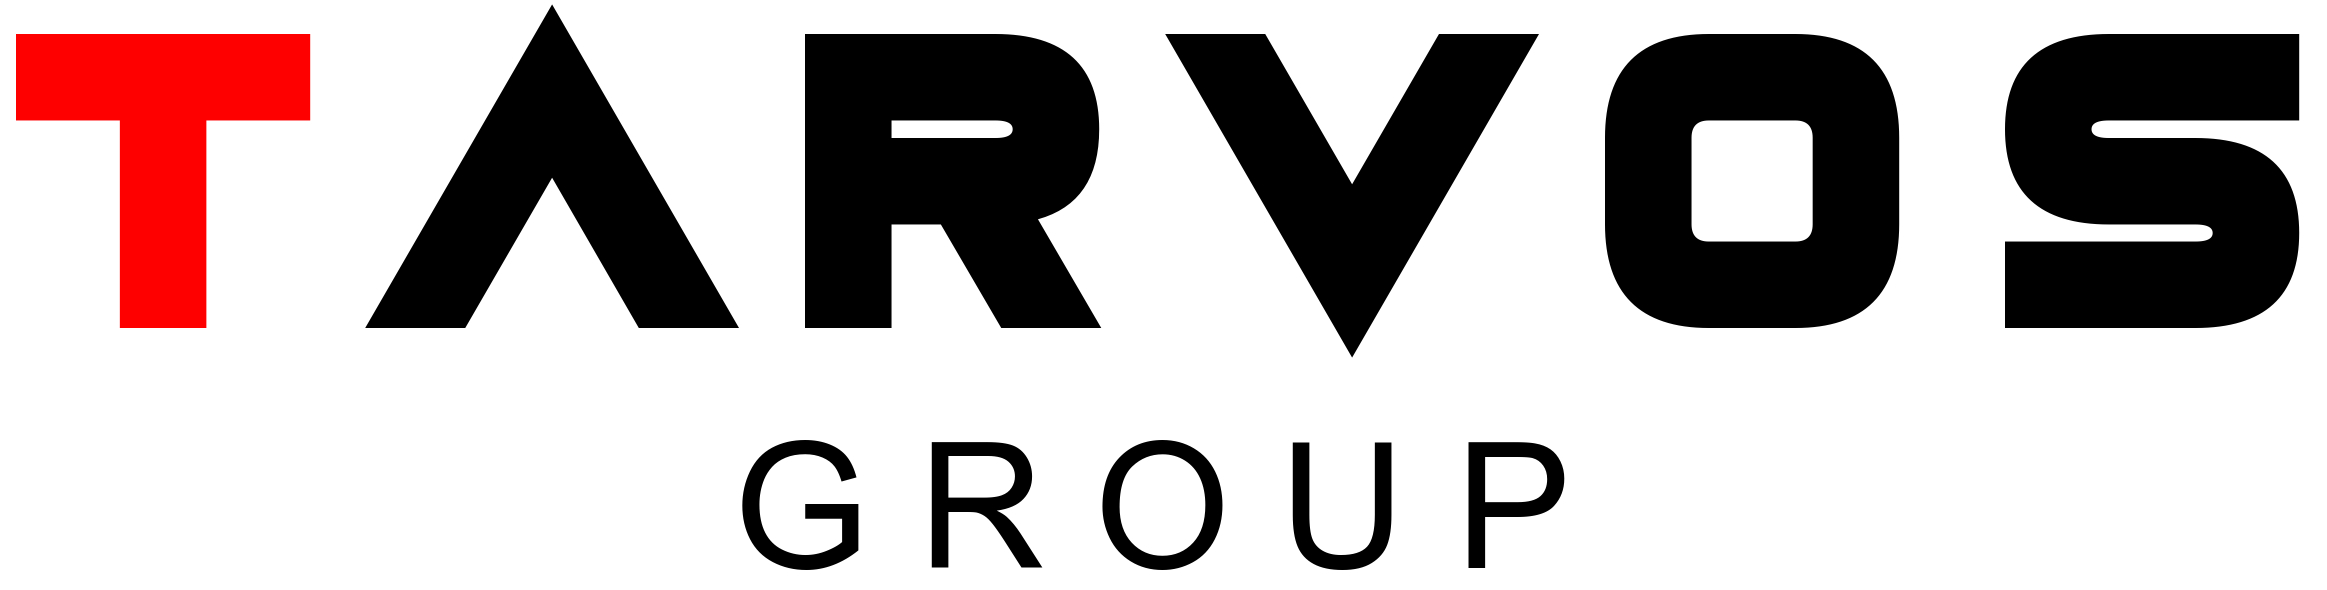 Tarvos Group Ltd